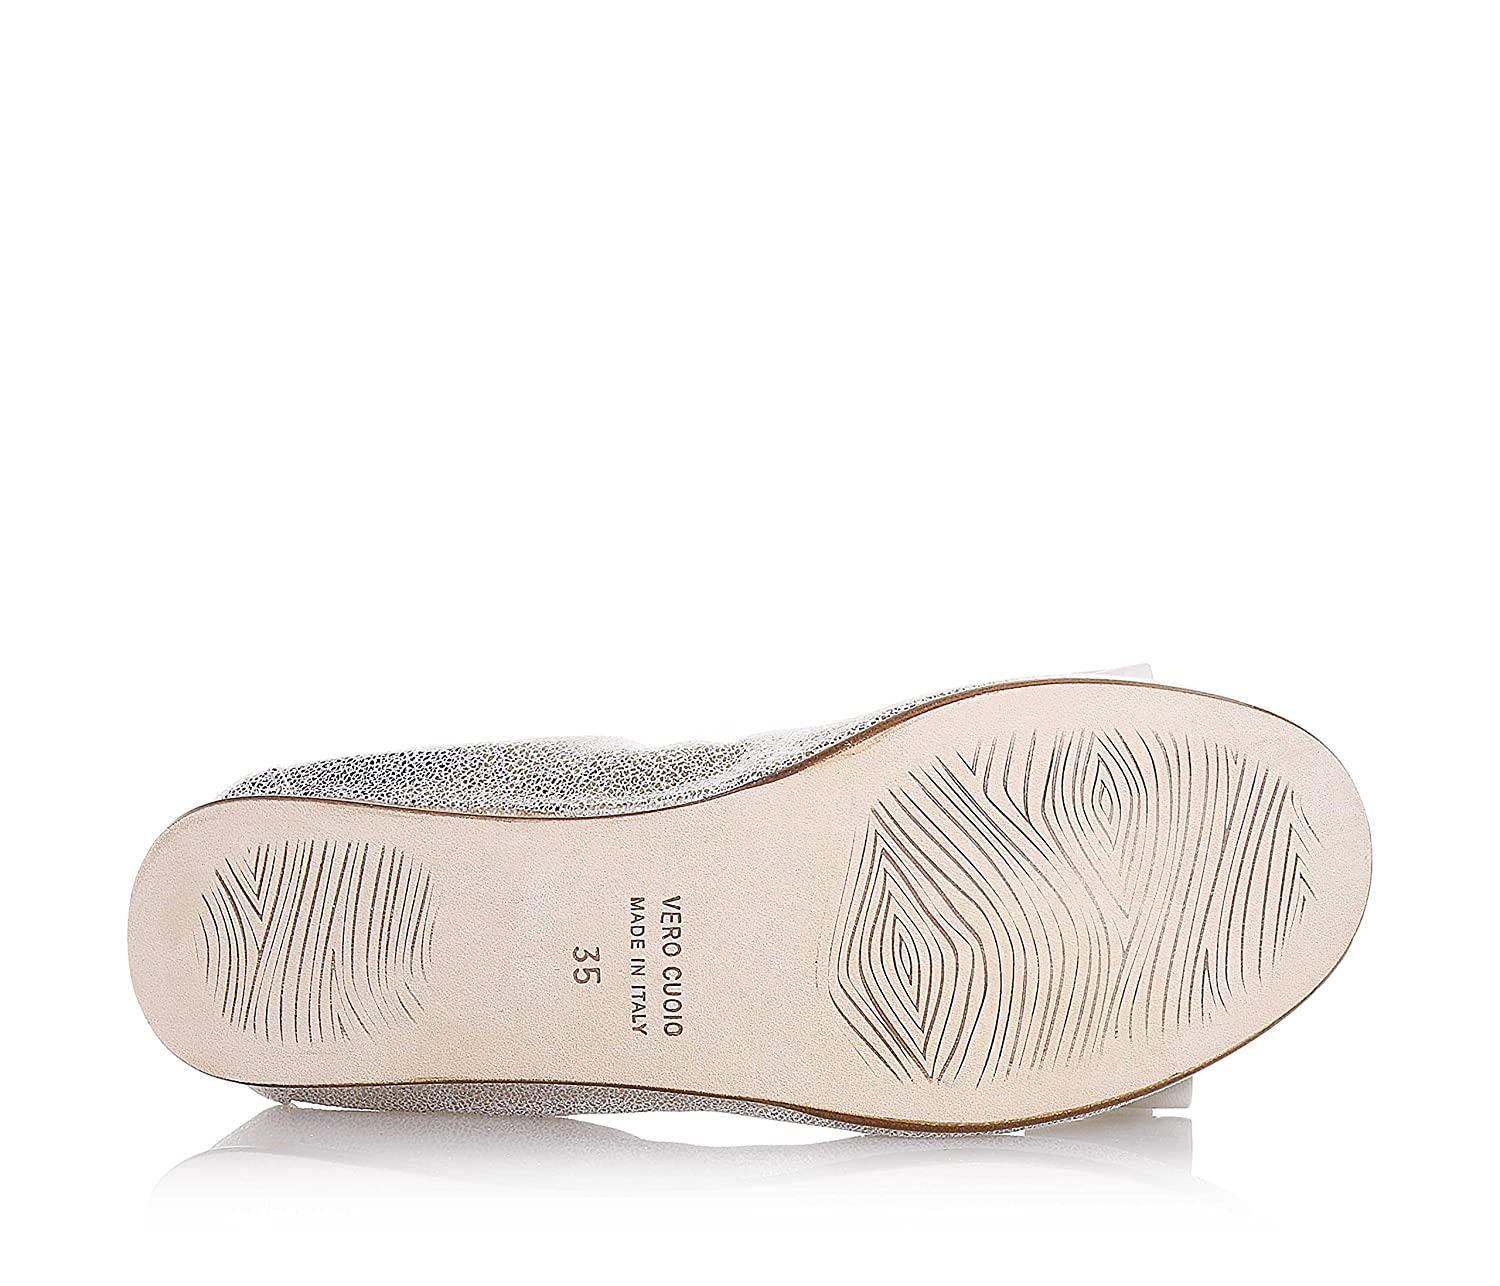 MI. Sol - Ballerine couleur platine en cuir, made in Italy, fille, femme:  Amazon.fr: Chaussures et Sacs